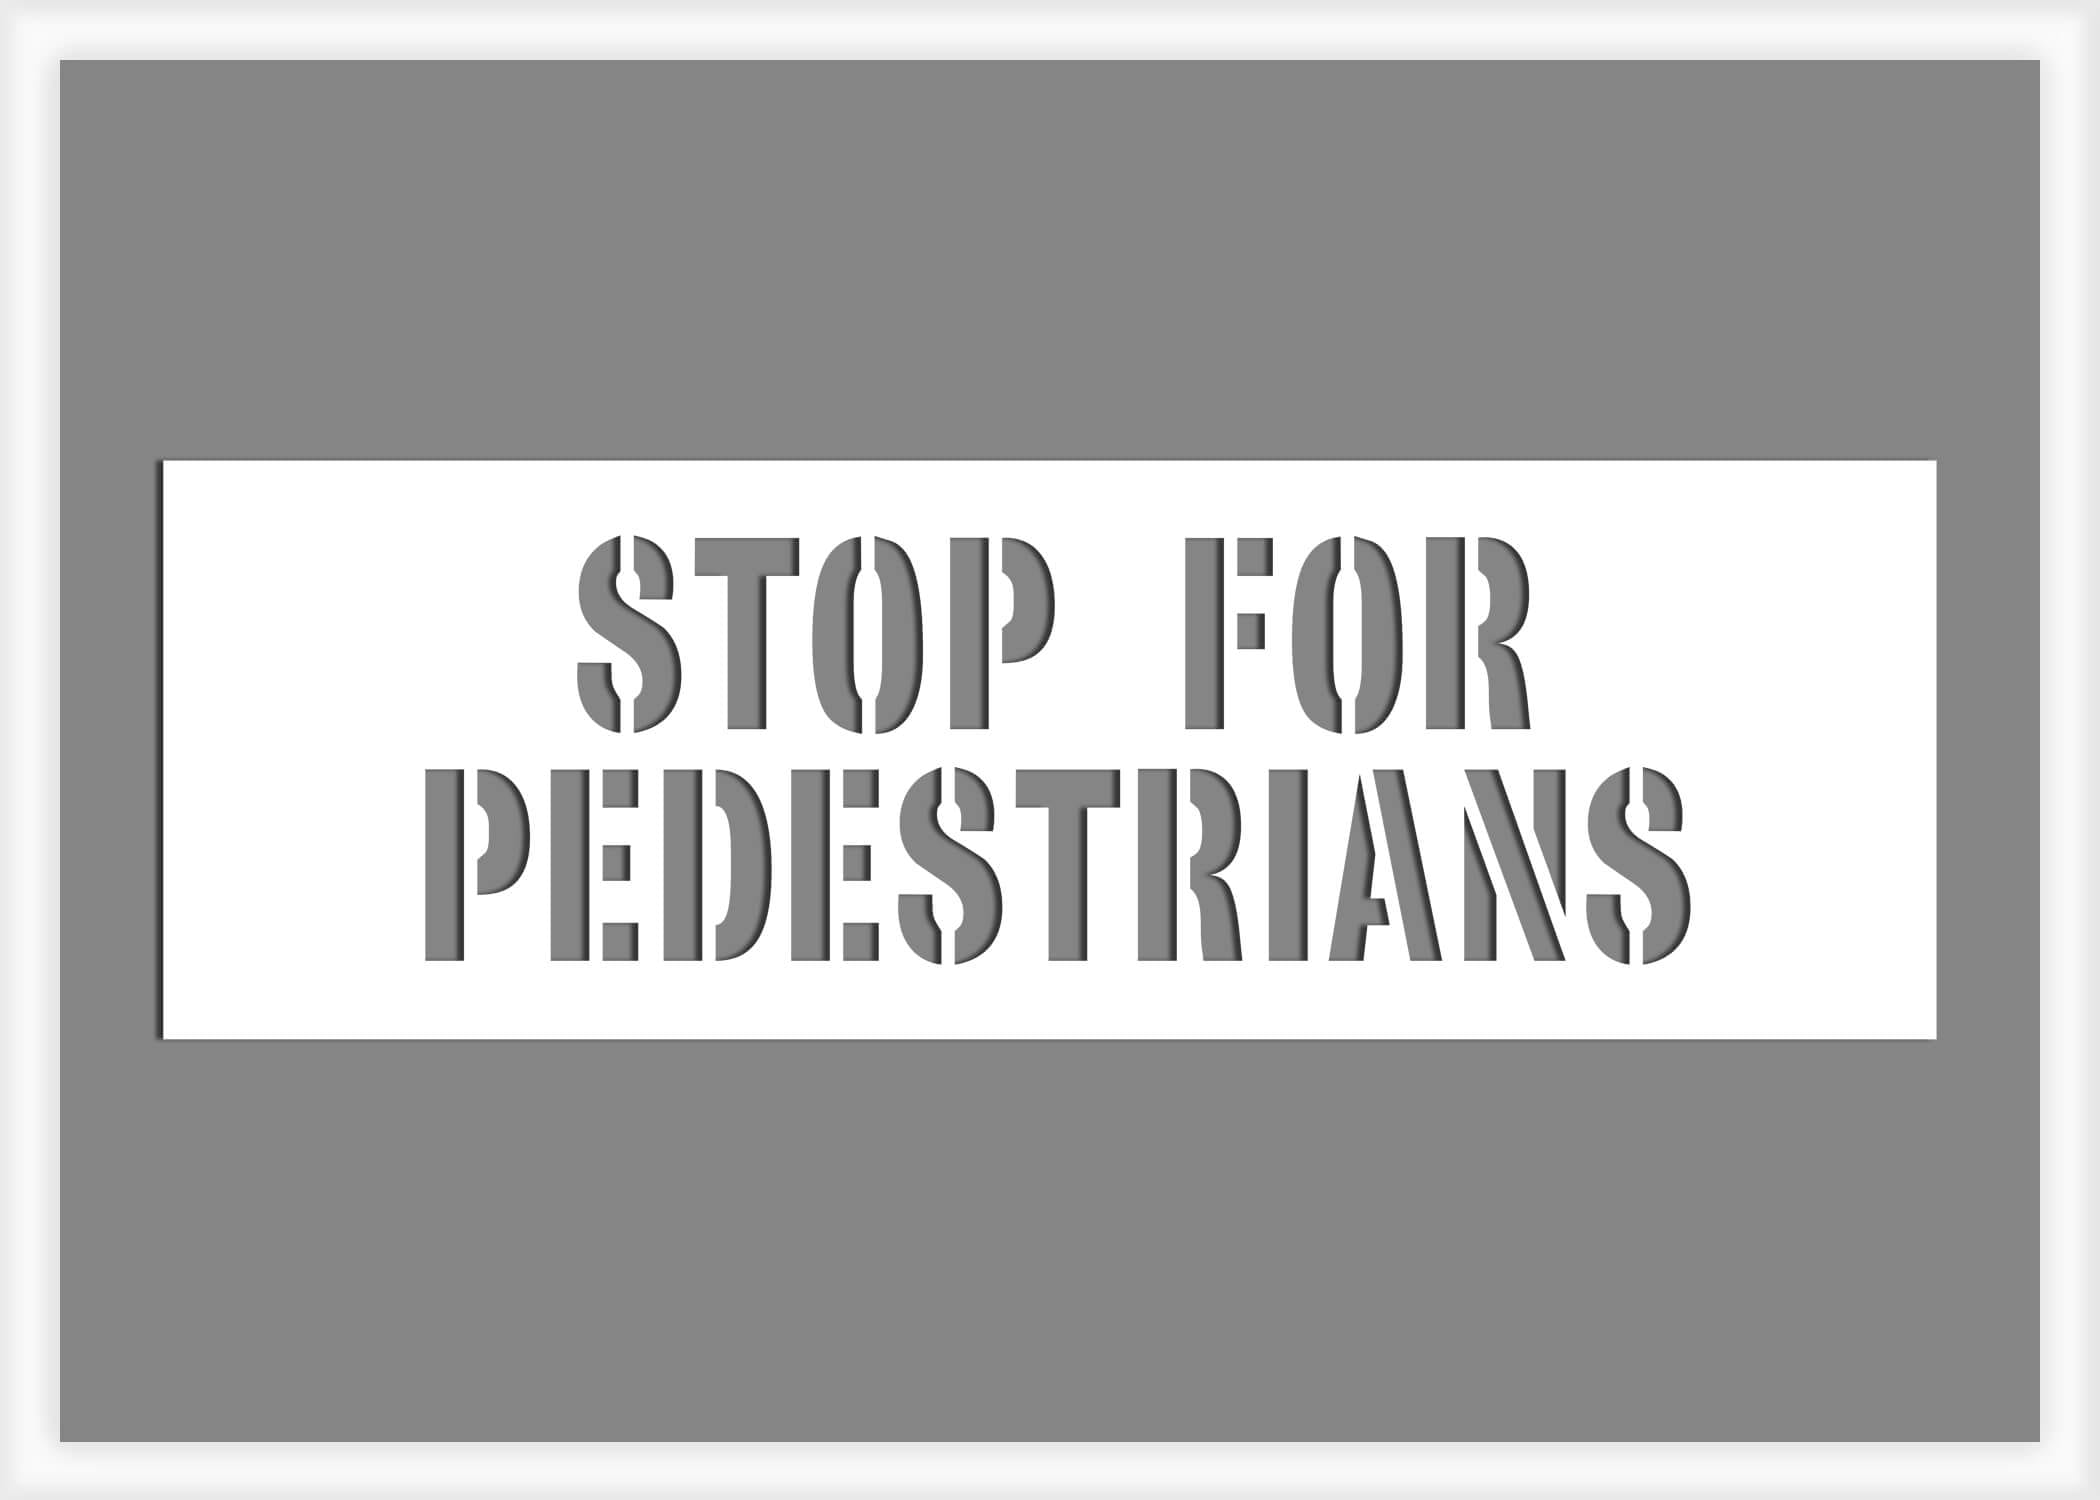 stop-for-pedestrians-2-lines-pavement-marking-stencil